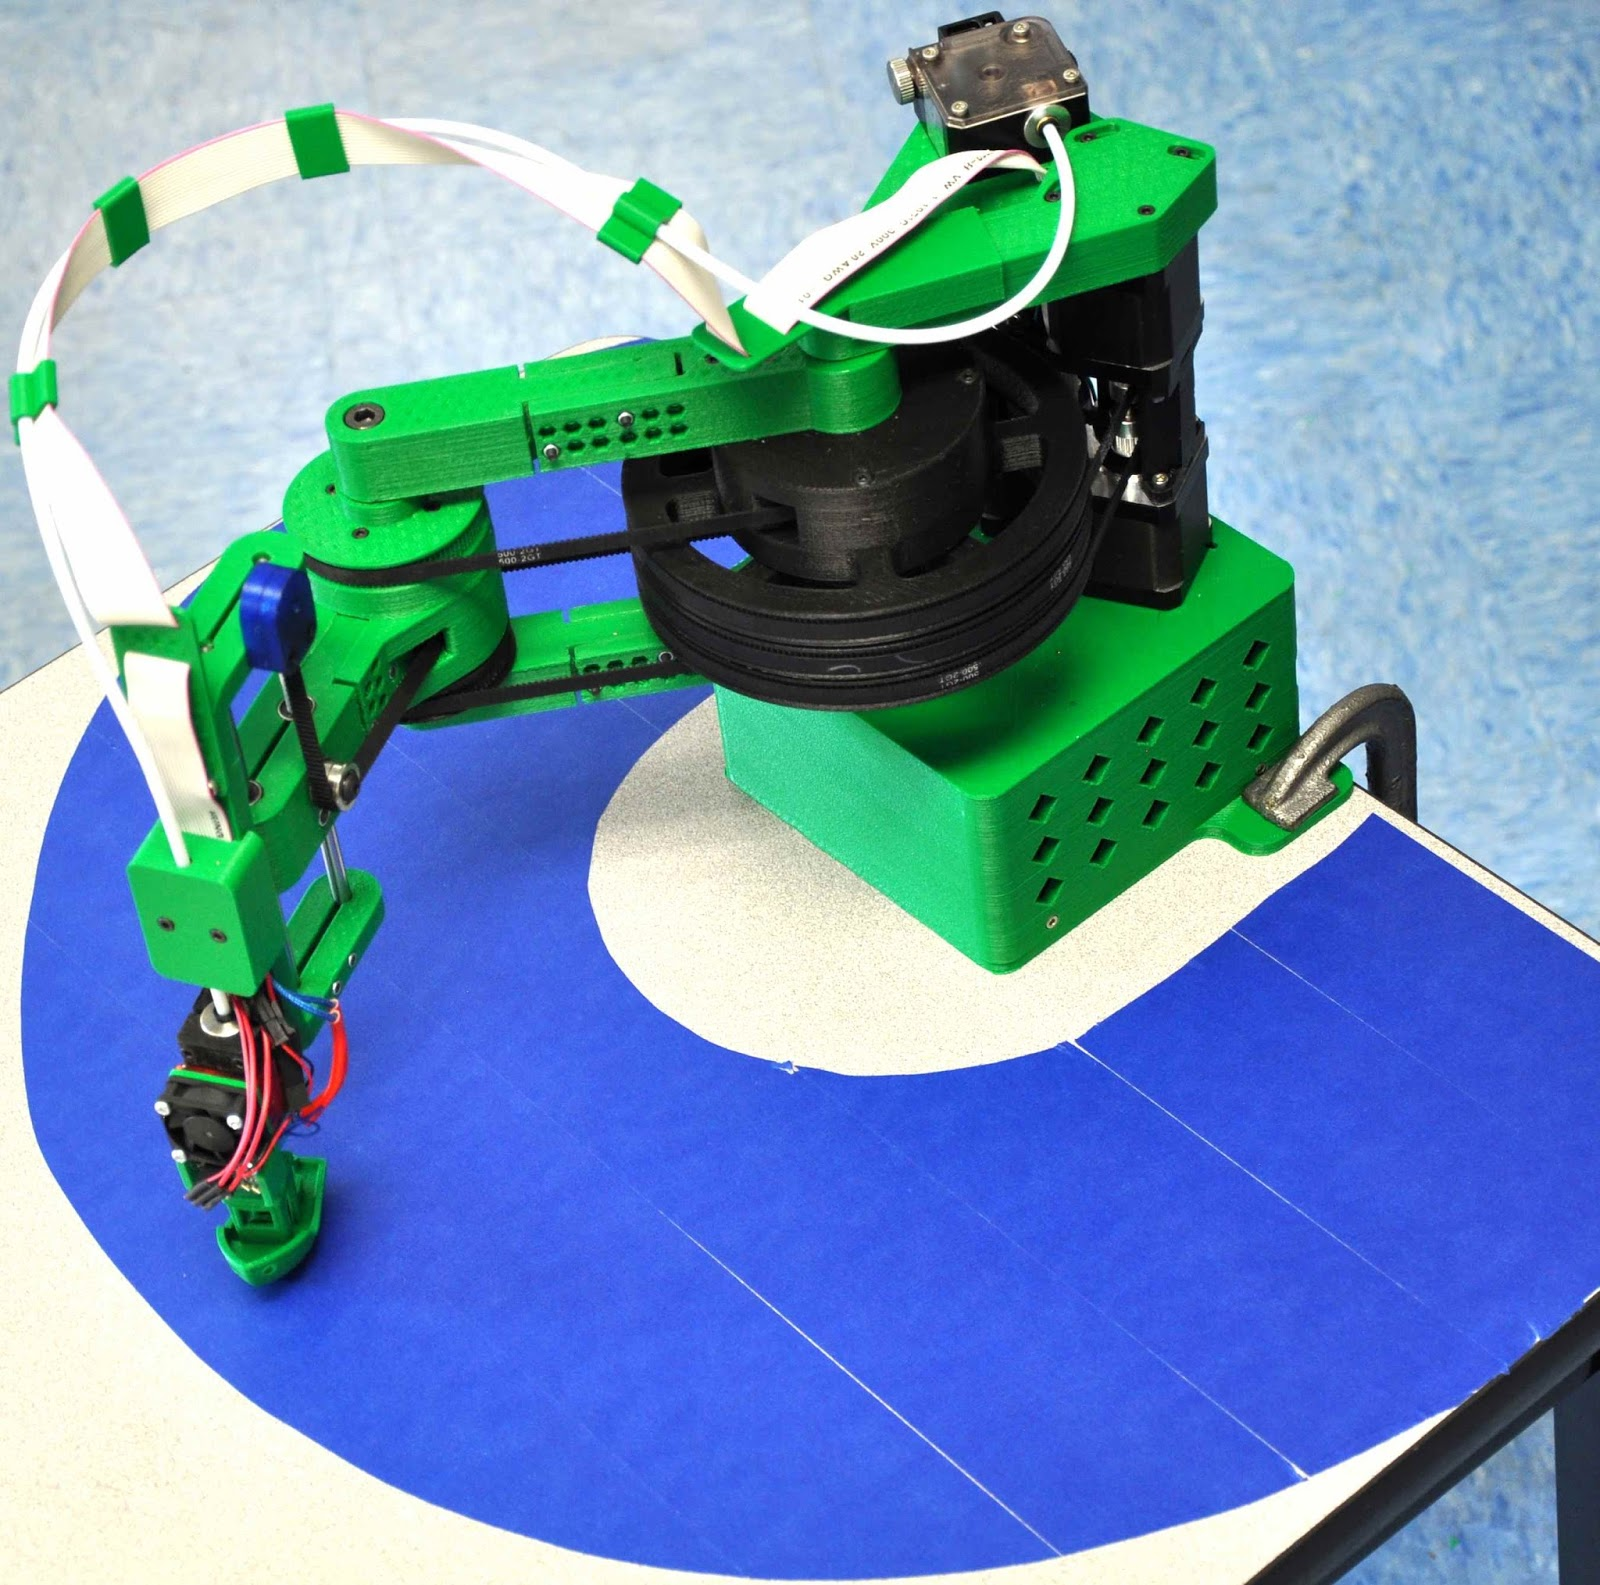 Our Work View Our Digital Print Web Projects: AMAZING REPRAP HELIOS WITH SEQUENTIAL 3D PRINTING